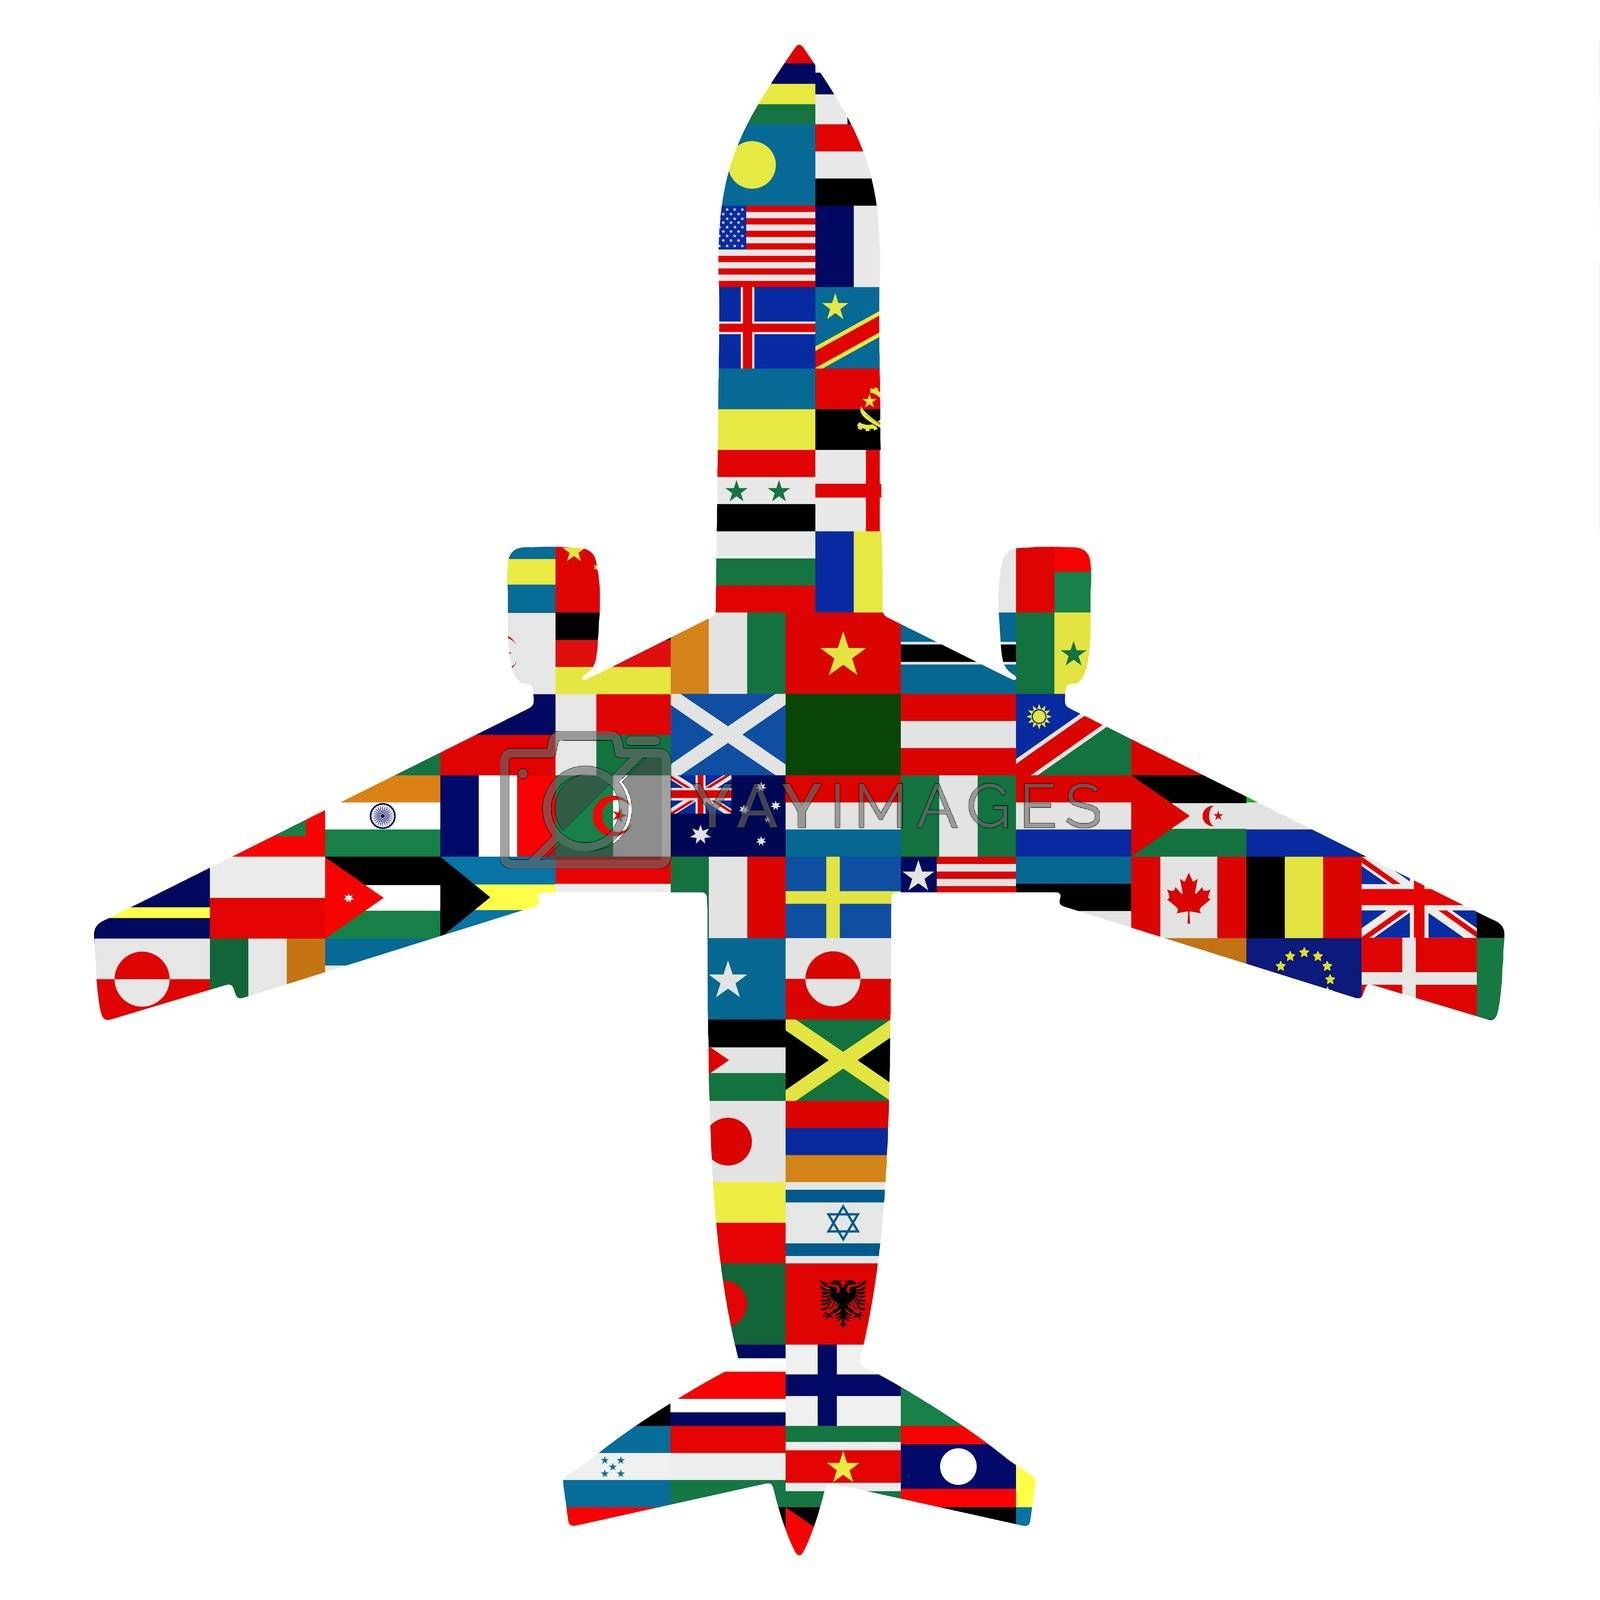 Silhouette of a passenger aeroplane with world flags as the texture